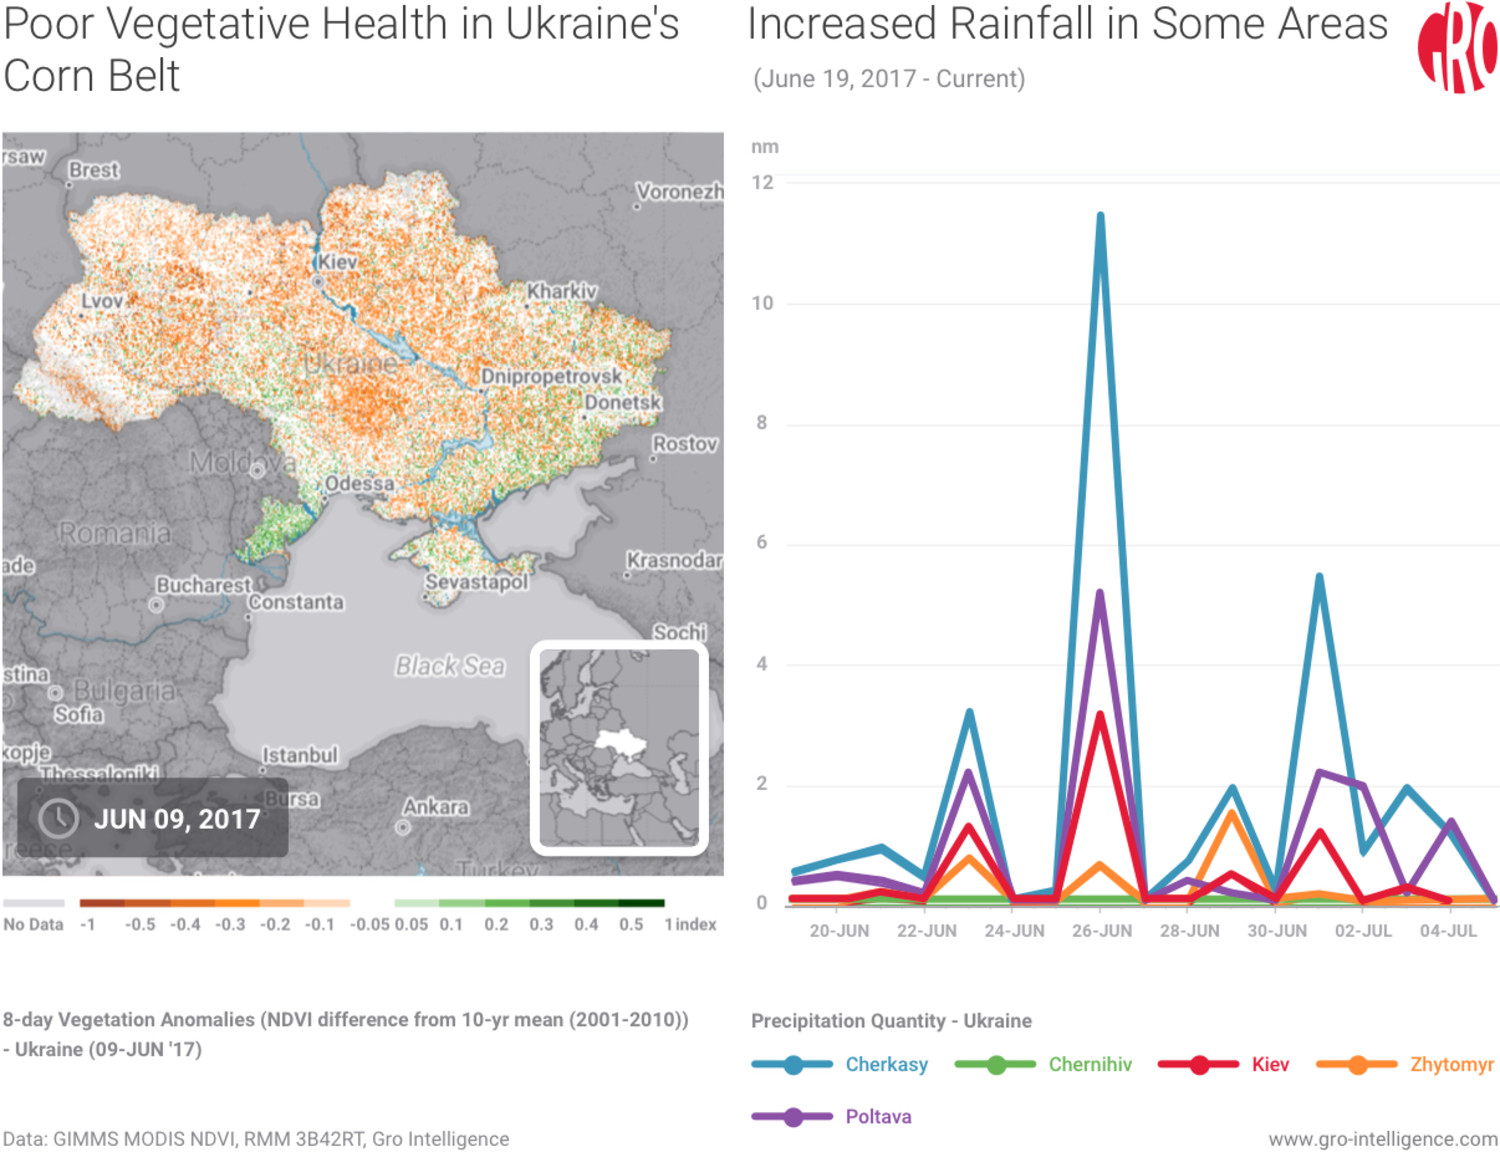 Poor vegetative conditions in Ukraine's Corn Belt